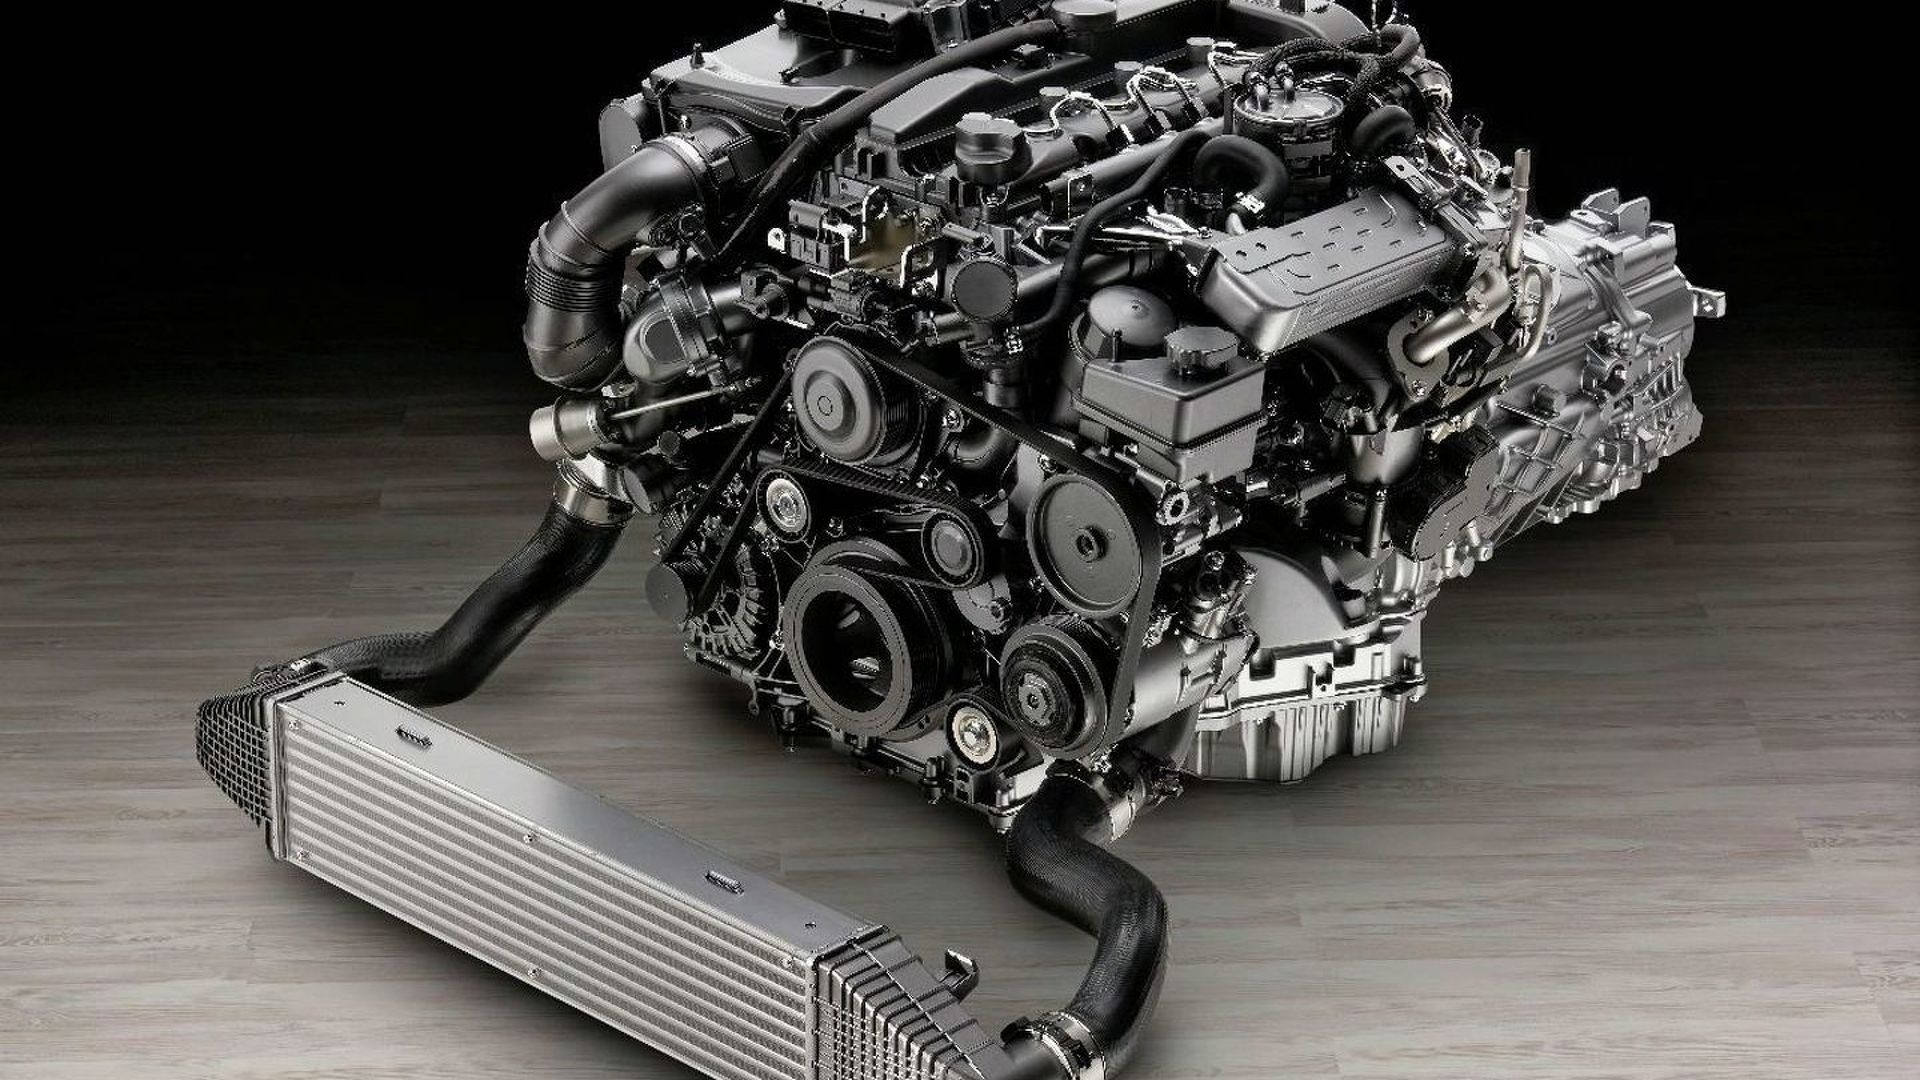 benz future family engines diesel mercedes of new cylinder news tech engine sixes the straight and s six car volt four back zmerc are advertisement